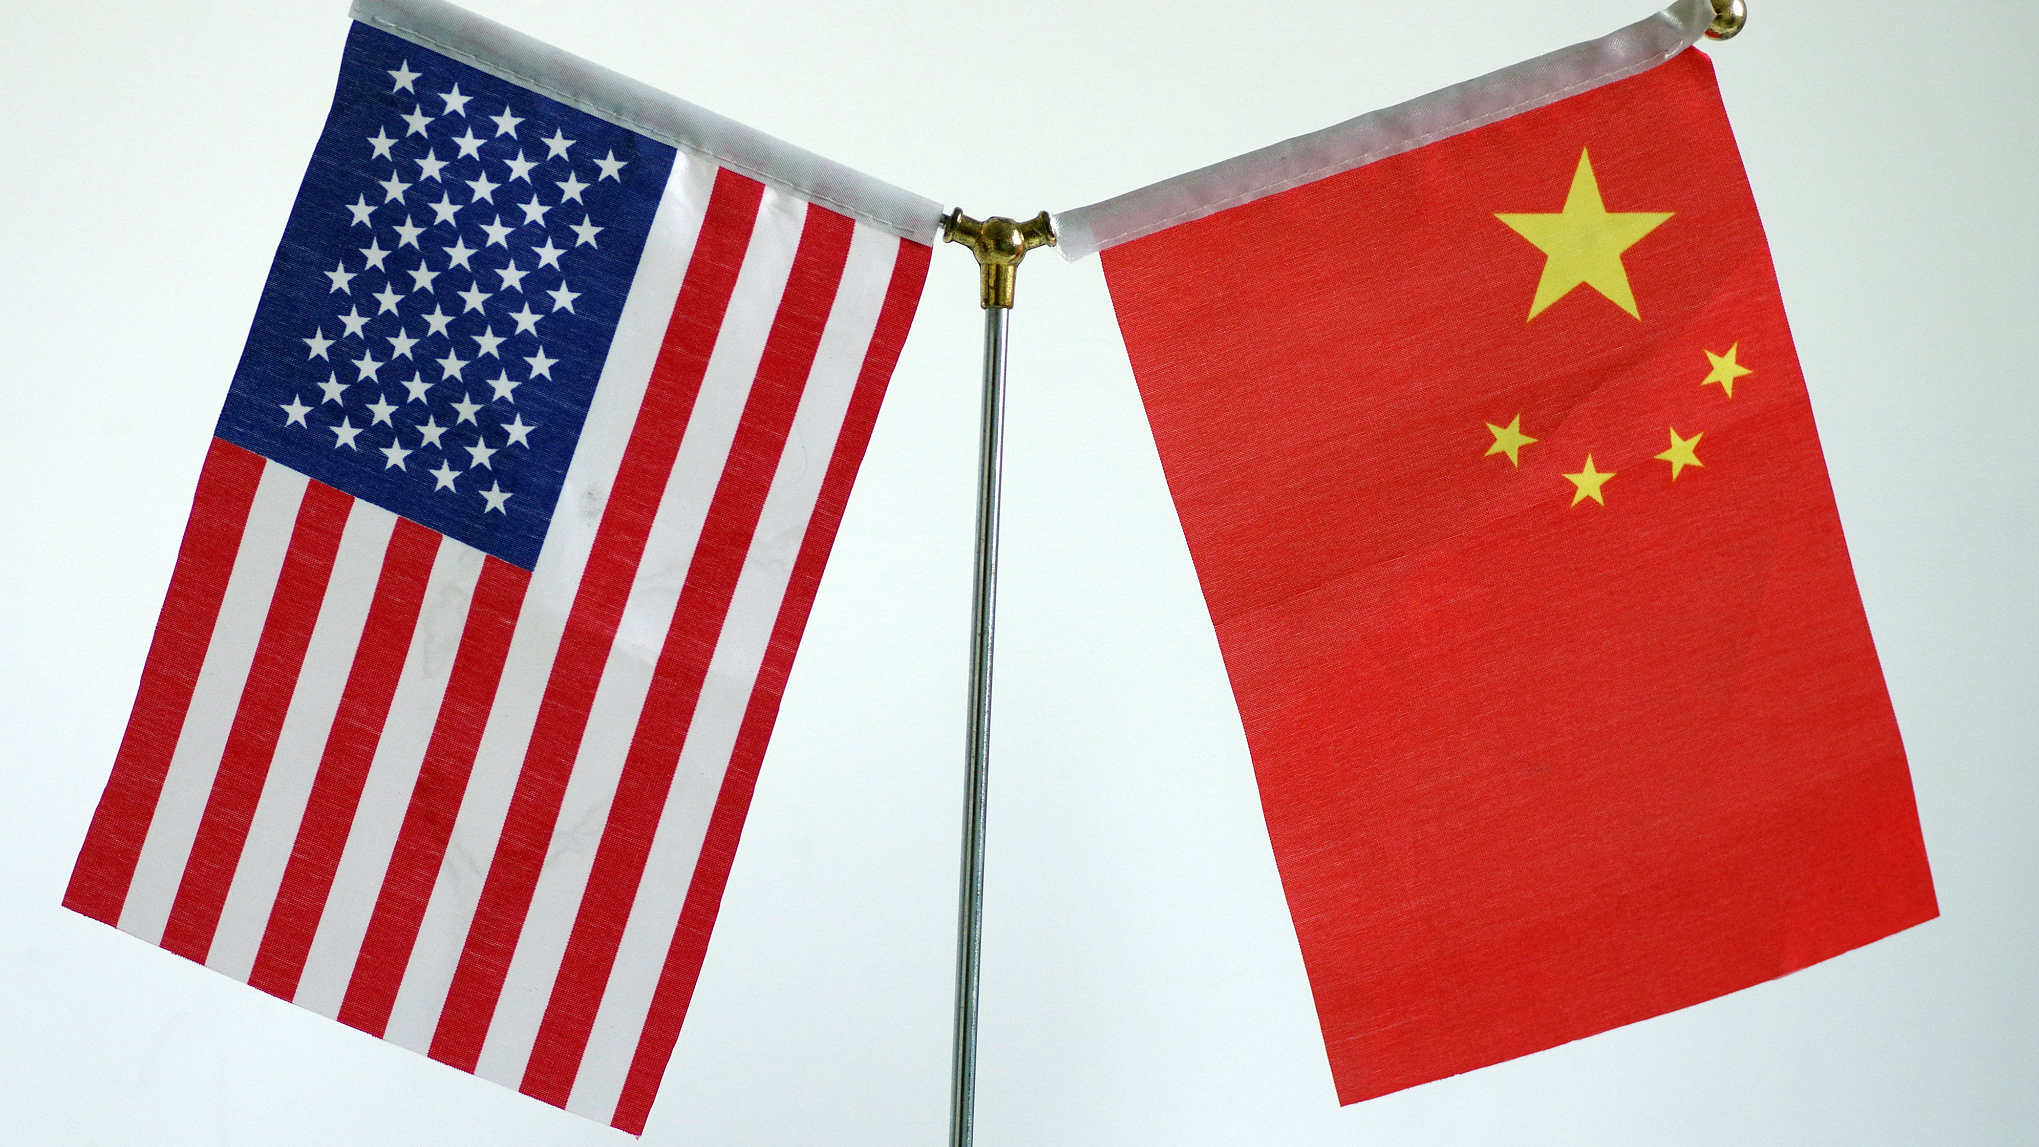 US industry associations voice opposition to new tariffs on Chinese imports